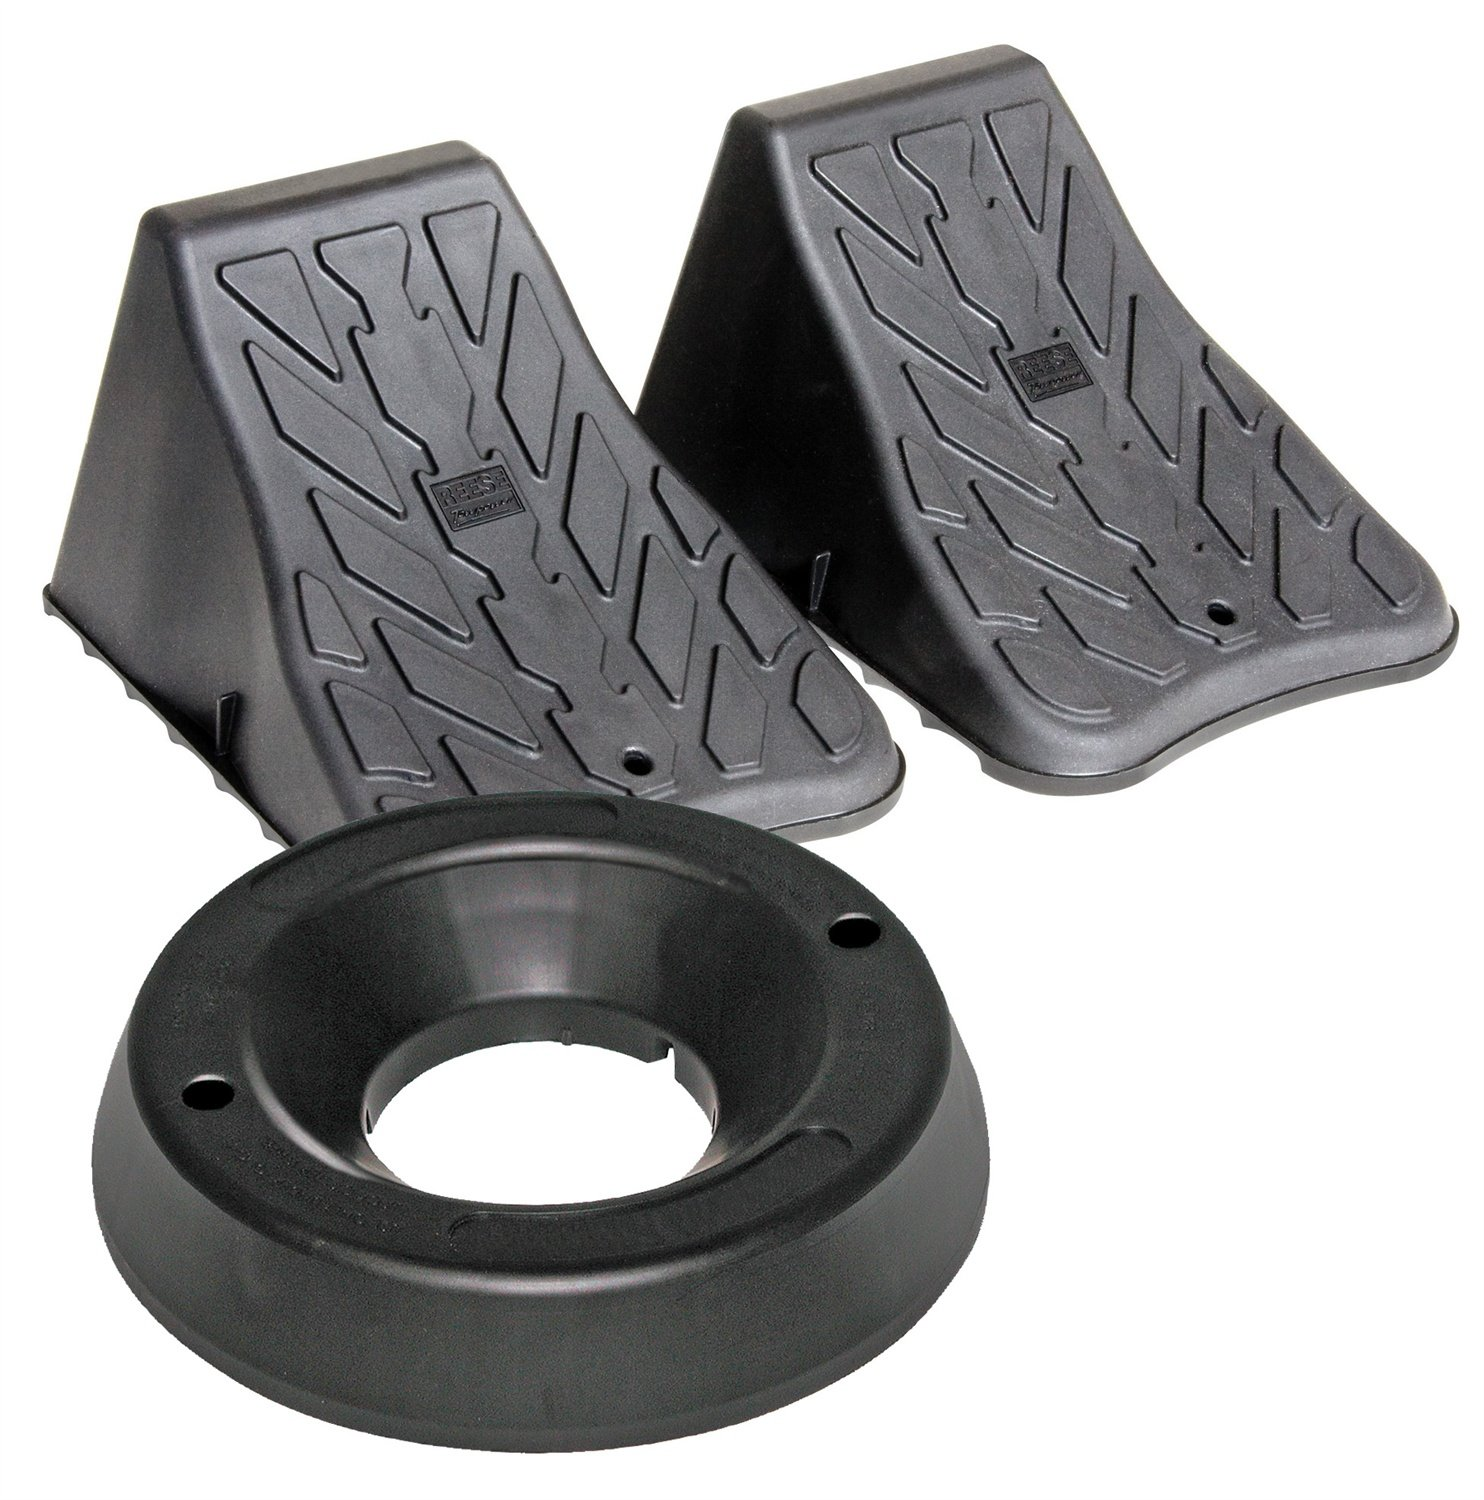 Reese Towpower 7000200 Wheel and Dock Chock Combo - 3 Piece